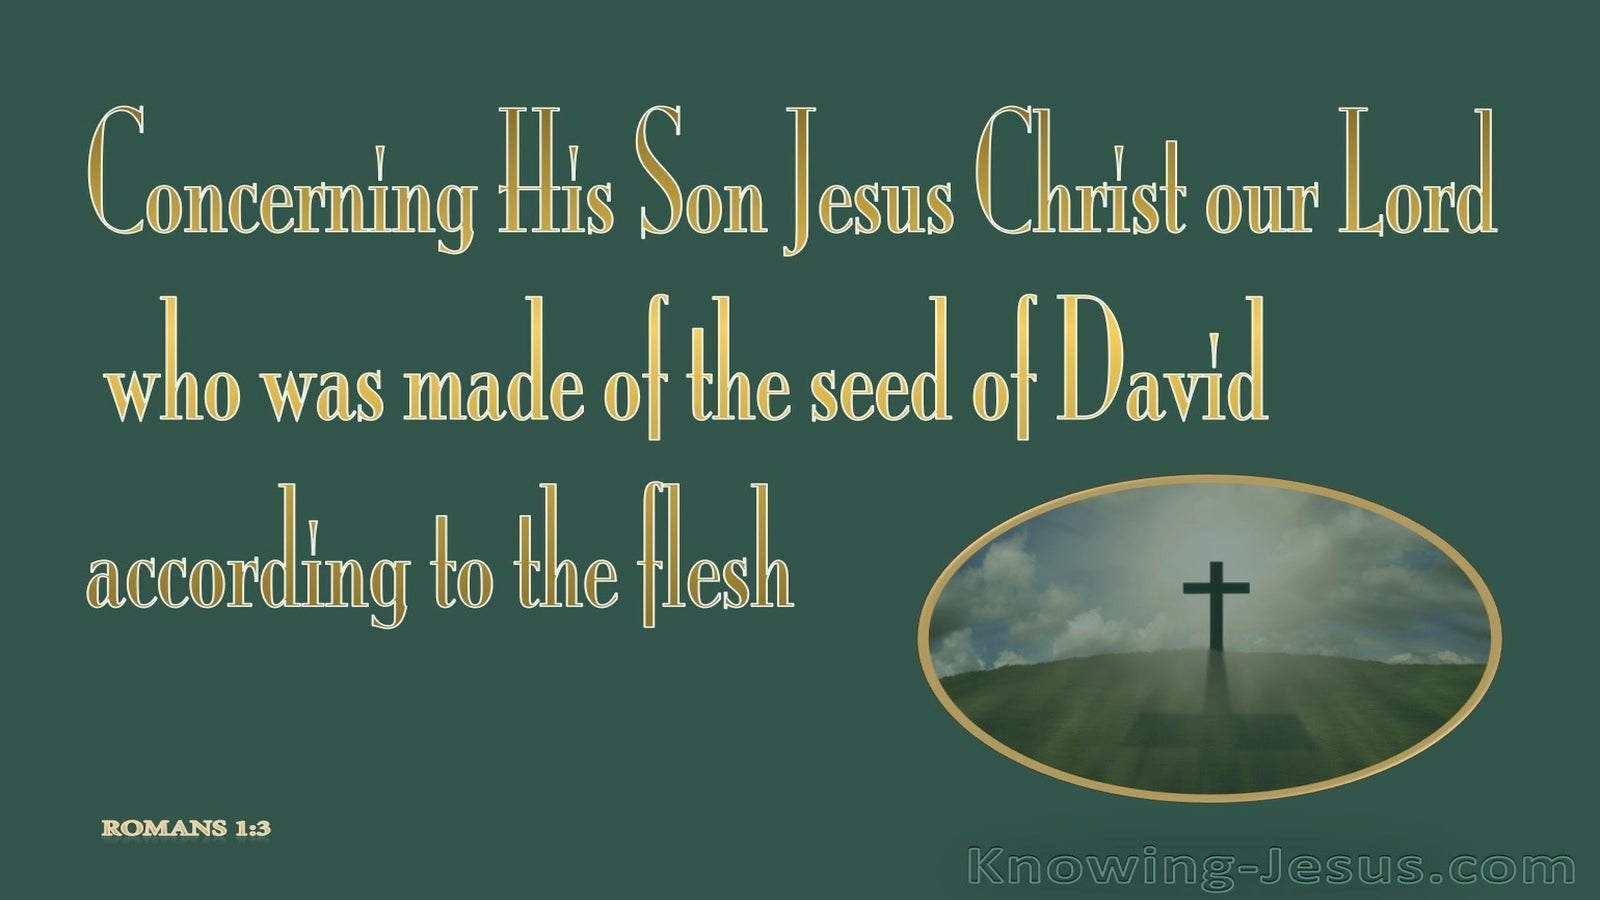 Romans 1:3 Made of the Seed of David (sage)